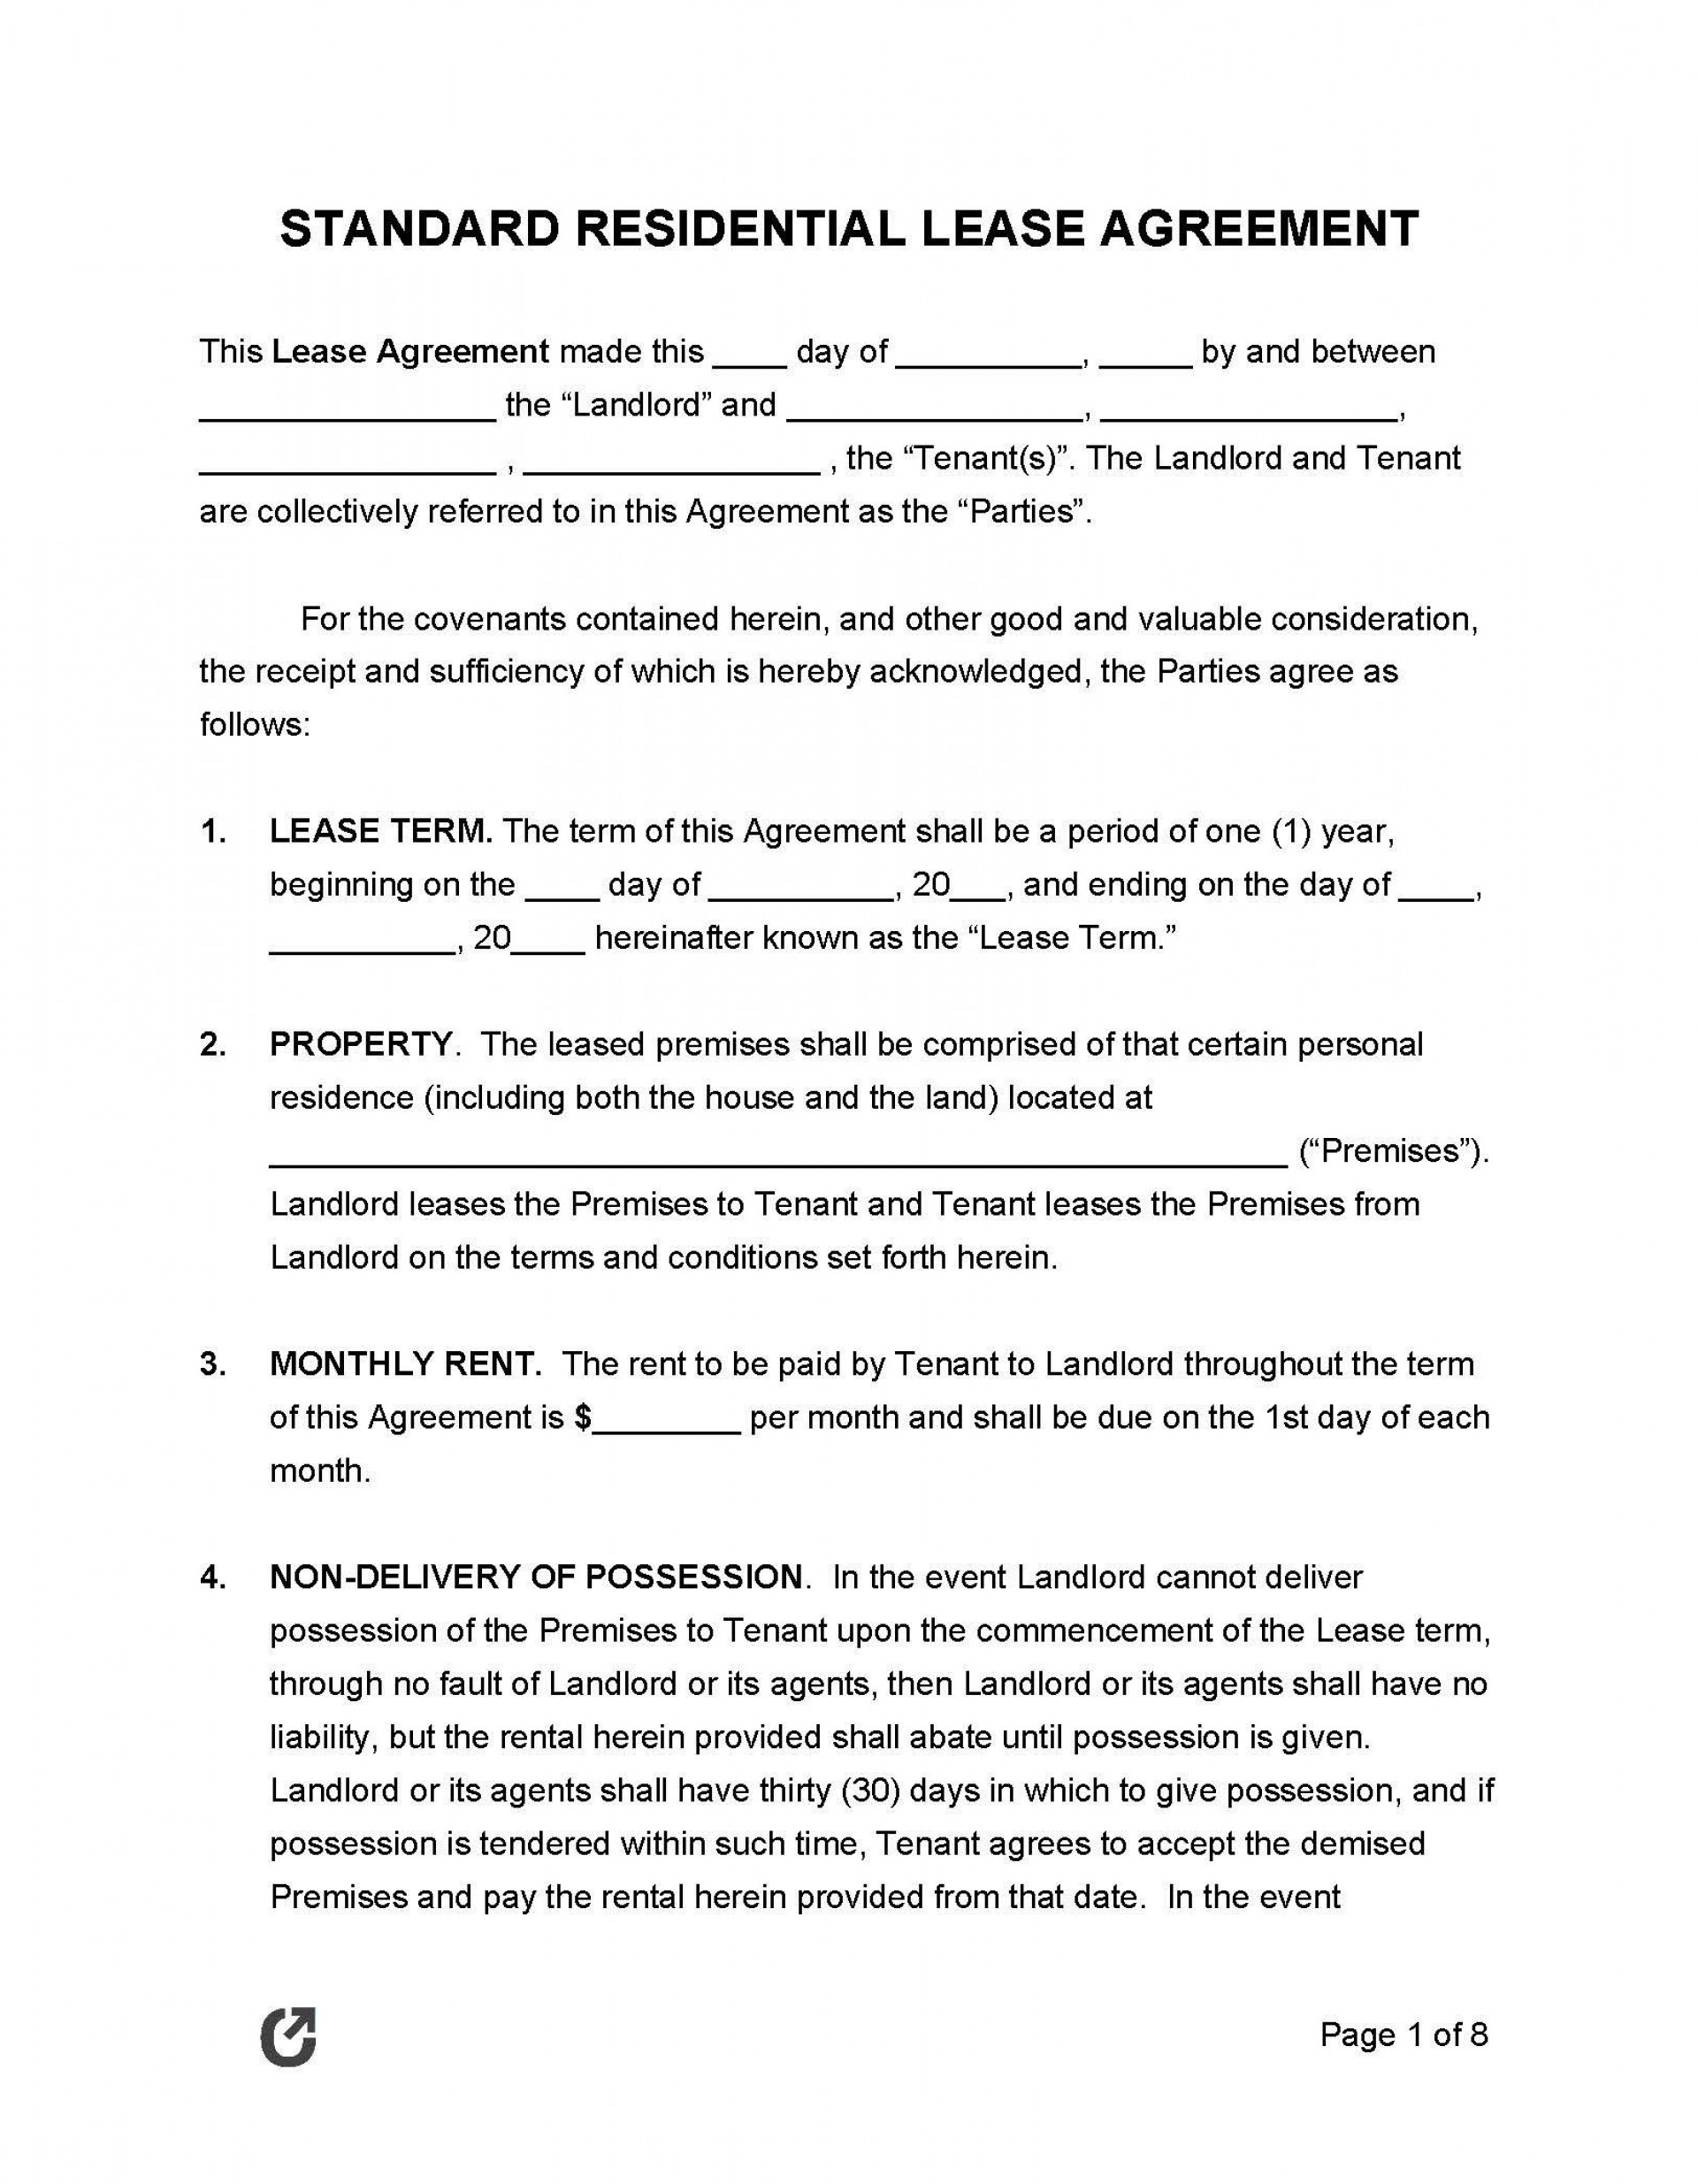 007 Phenomenal House Rental Contract Template High Resolution  Agreement Free South Africa Form Download Rent1920